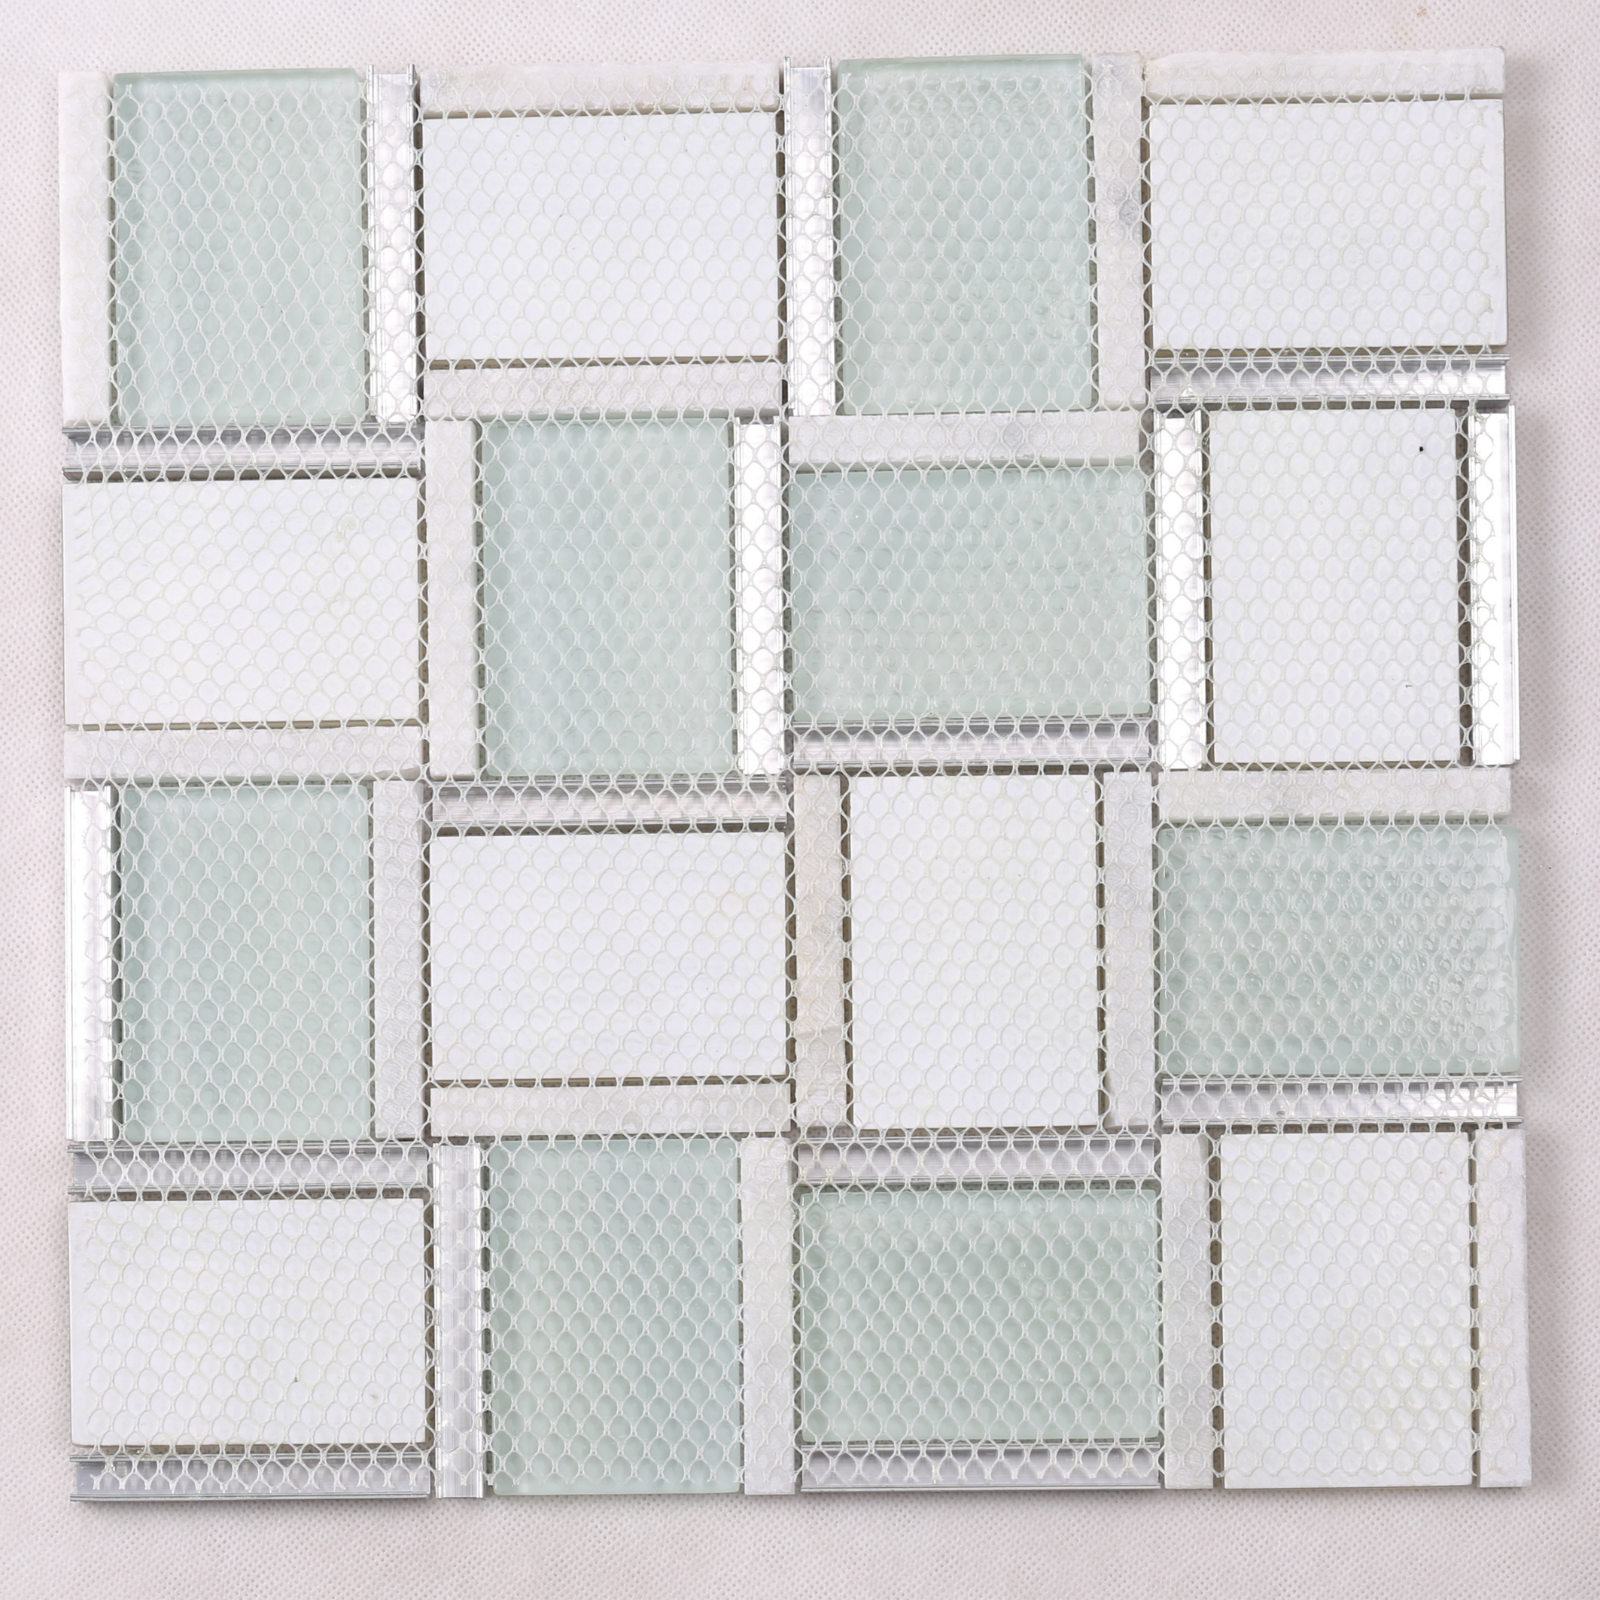 Heng Xing beveled bevel tile supplier for kitchen-5